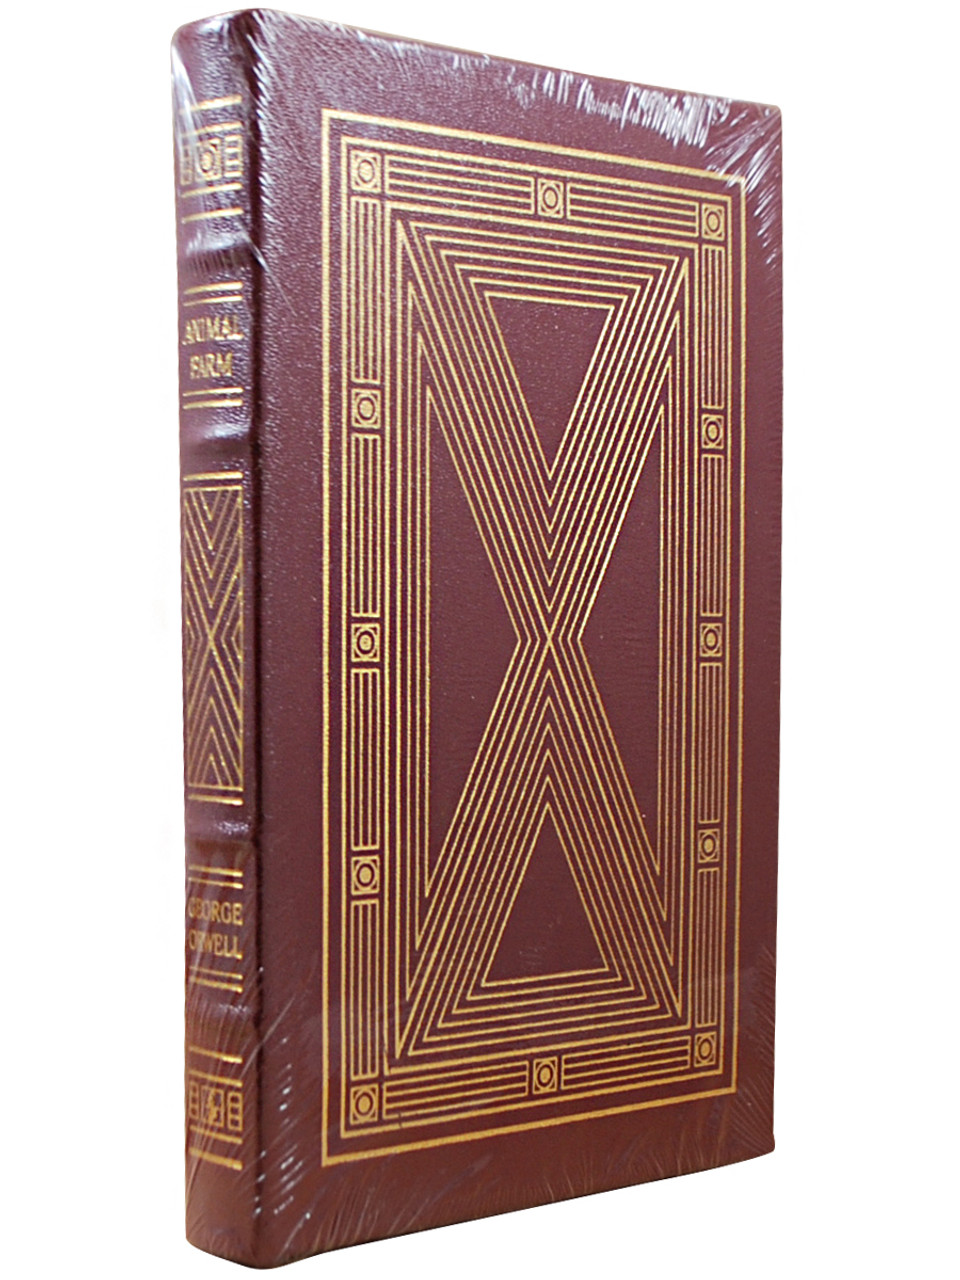 """Easton Press """"Animal Farm"""" George Orwell, Leather Bound Collector's Edition [Sealed]"""